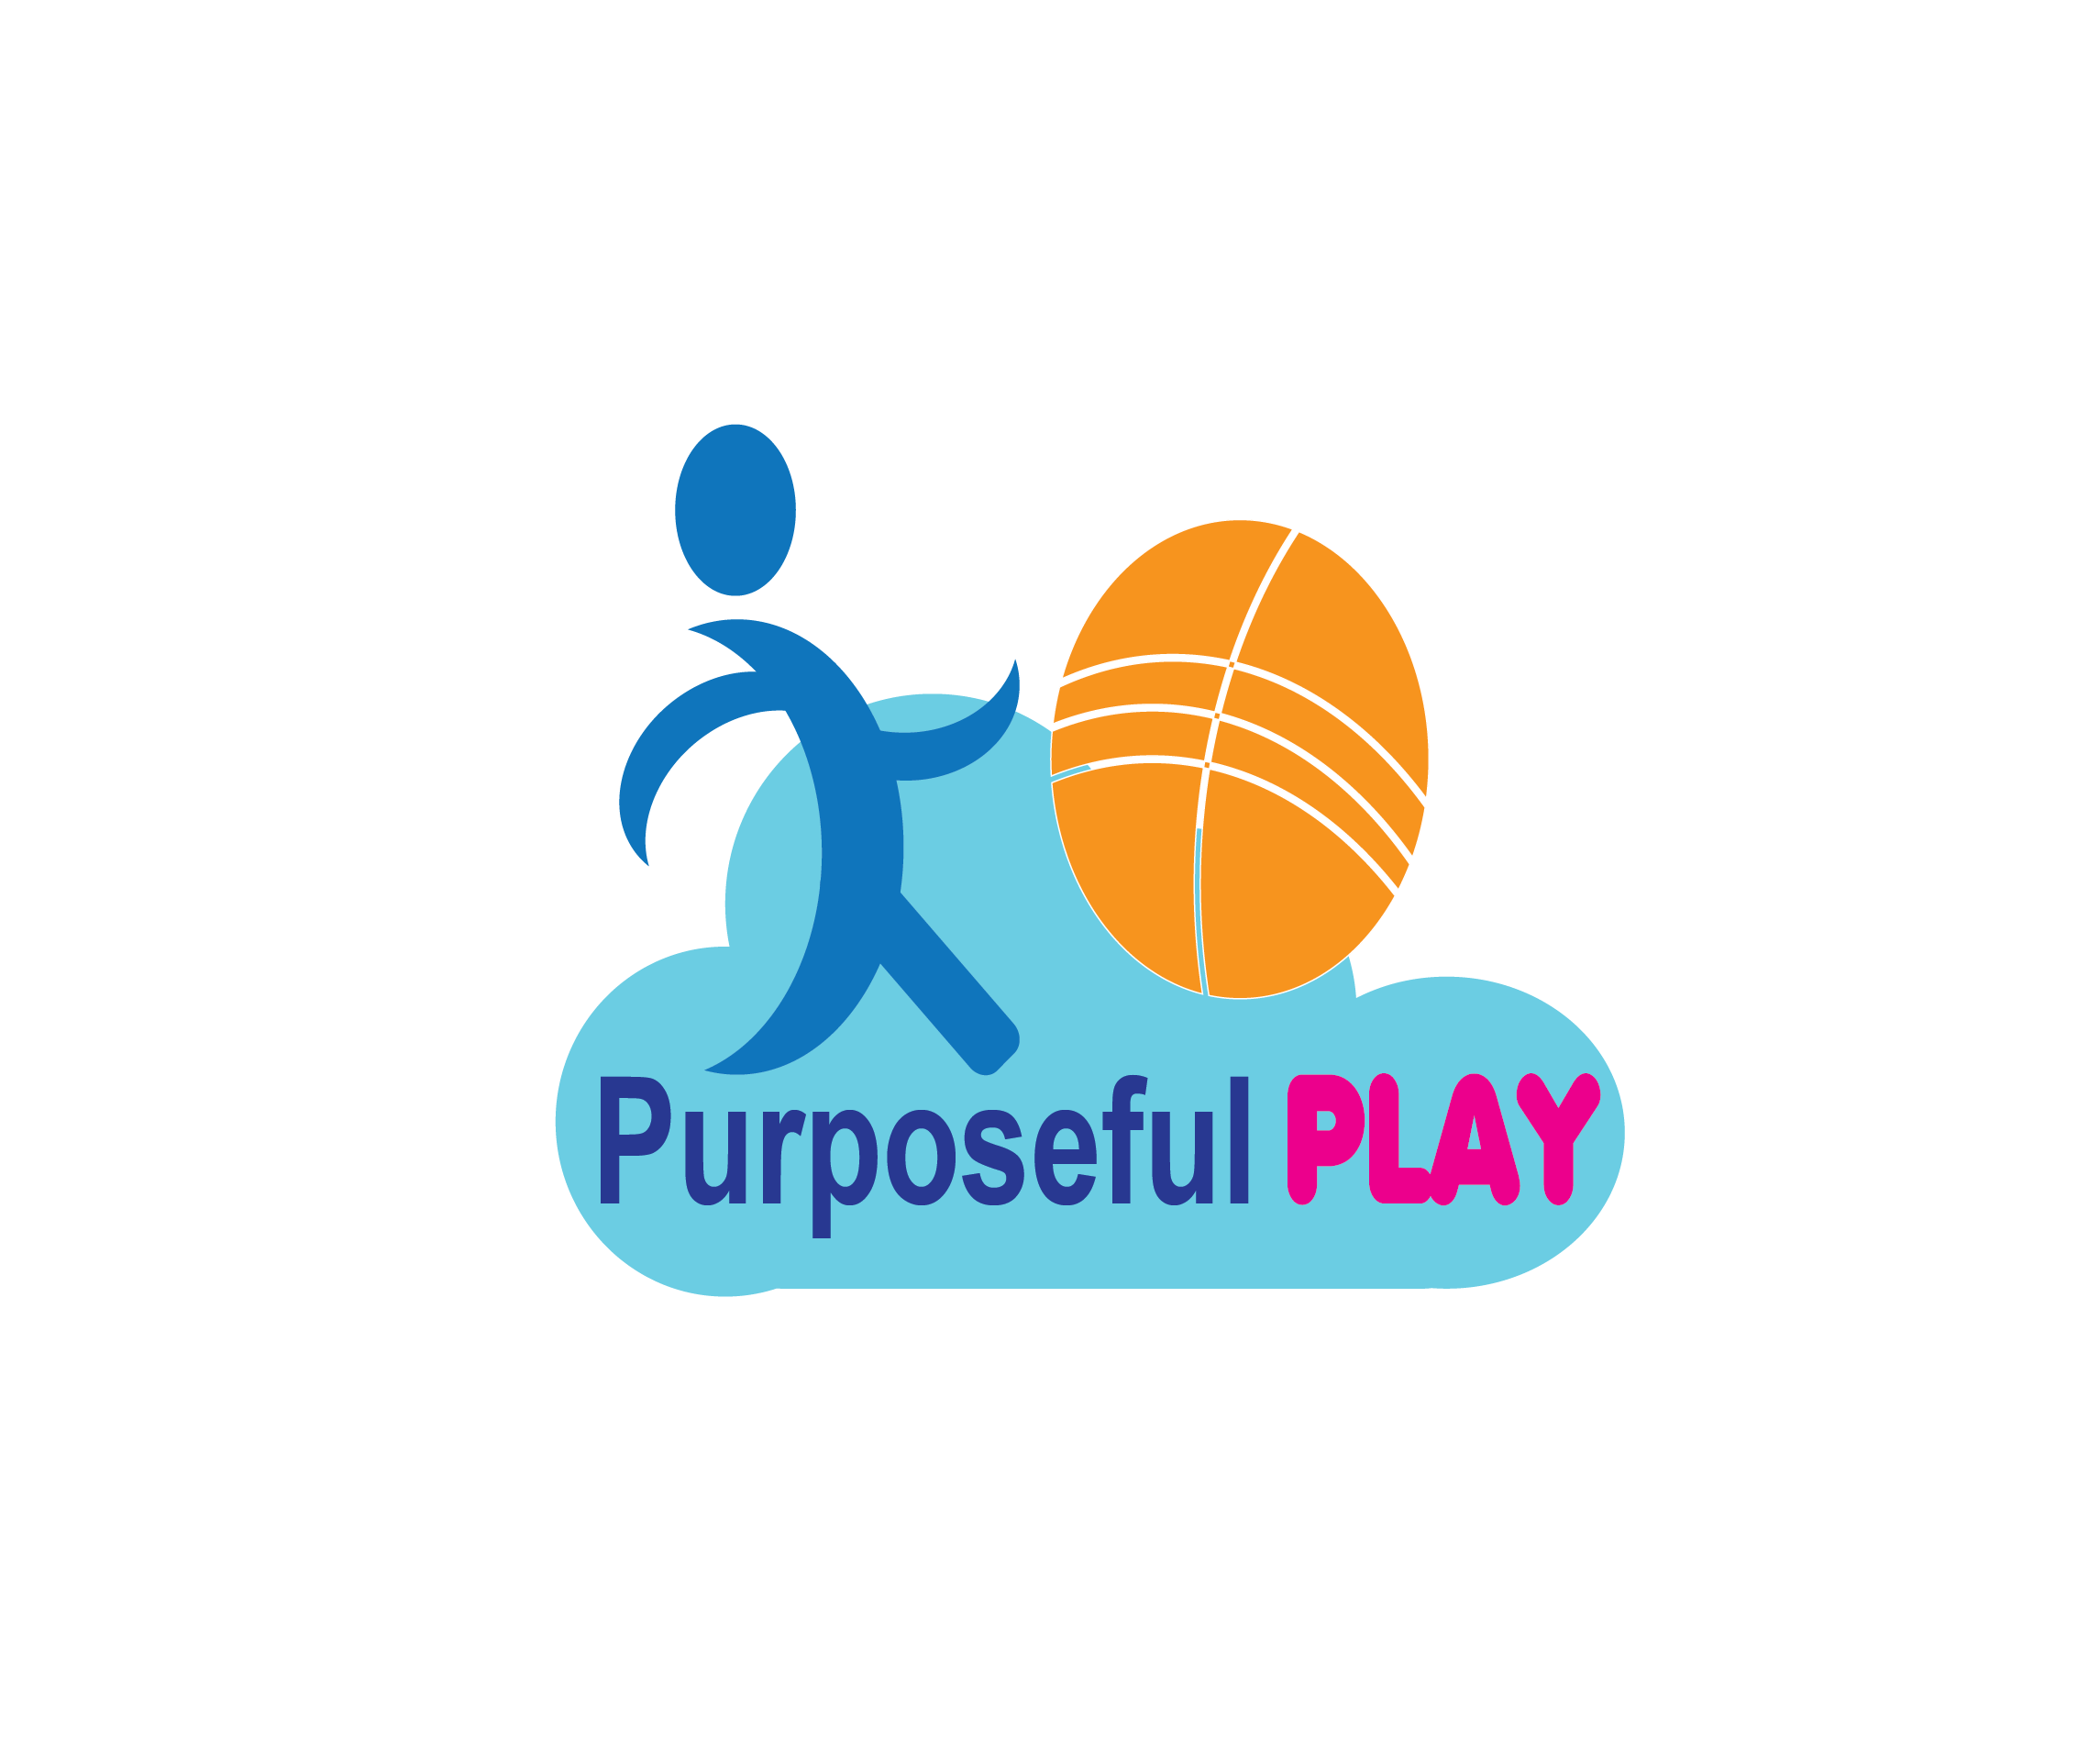 Logo Design by aanygraphic - Entry No. 33 in the Logo Design Contest Purposeful PLAY Logo Design.